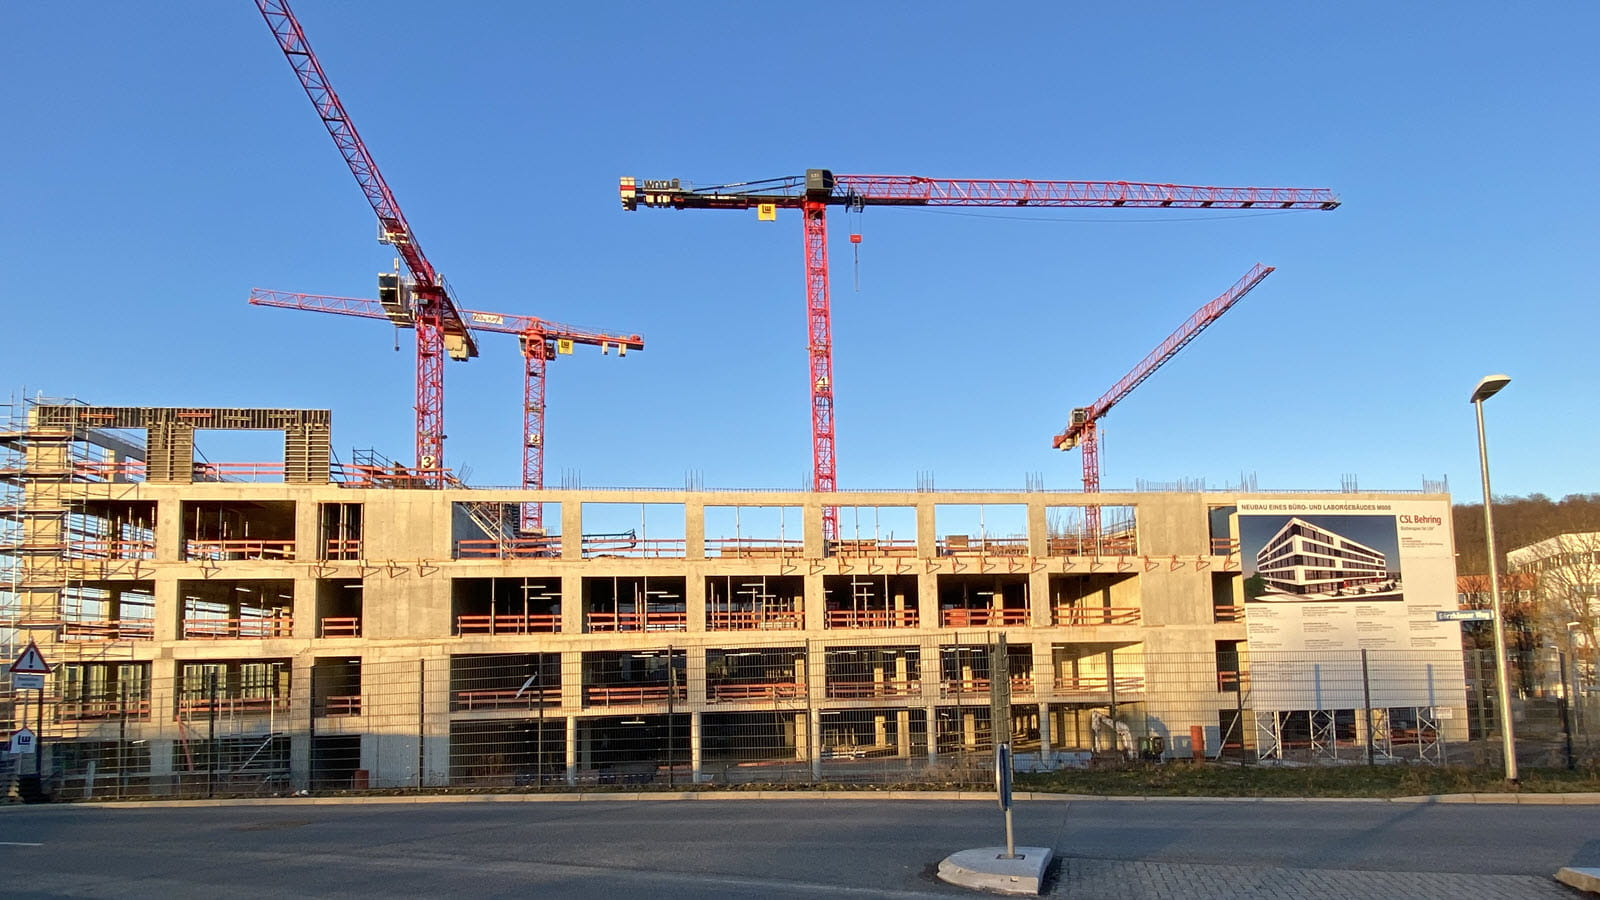 Several red construction cranes at work on upper floors of a new research building in Marburg, Germany